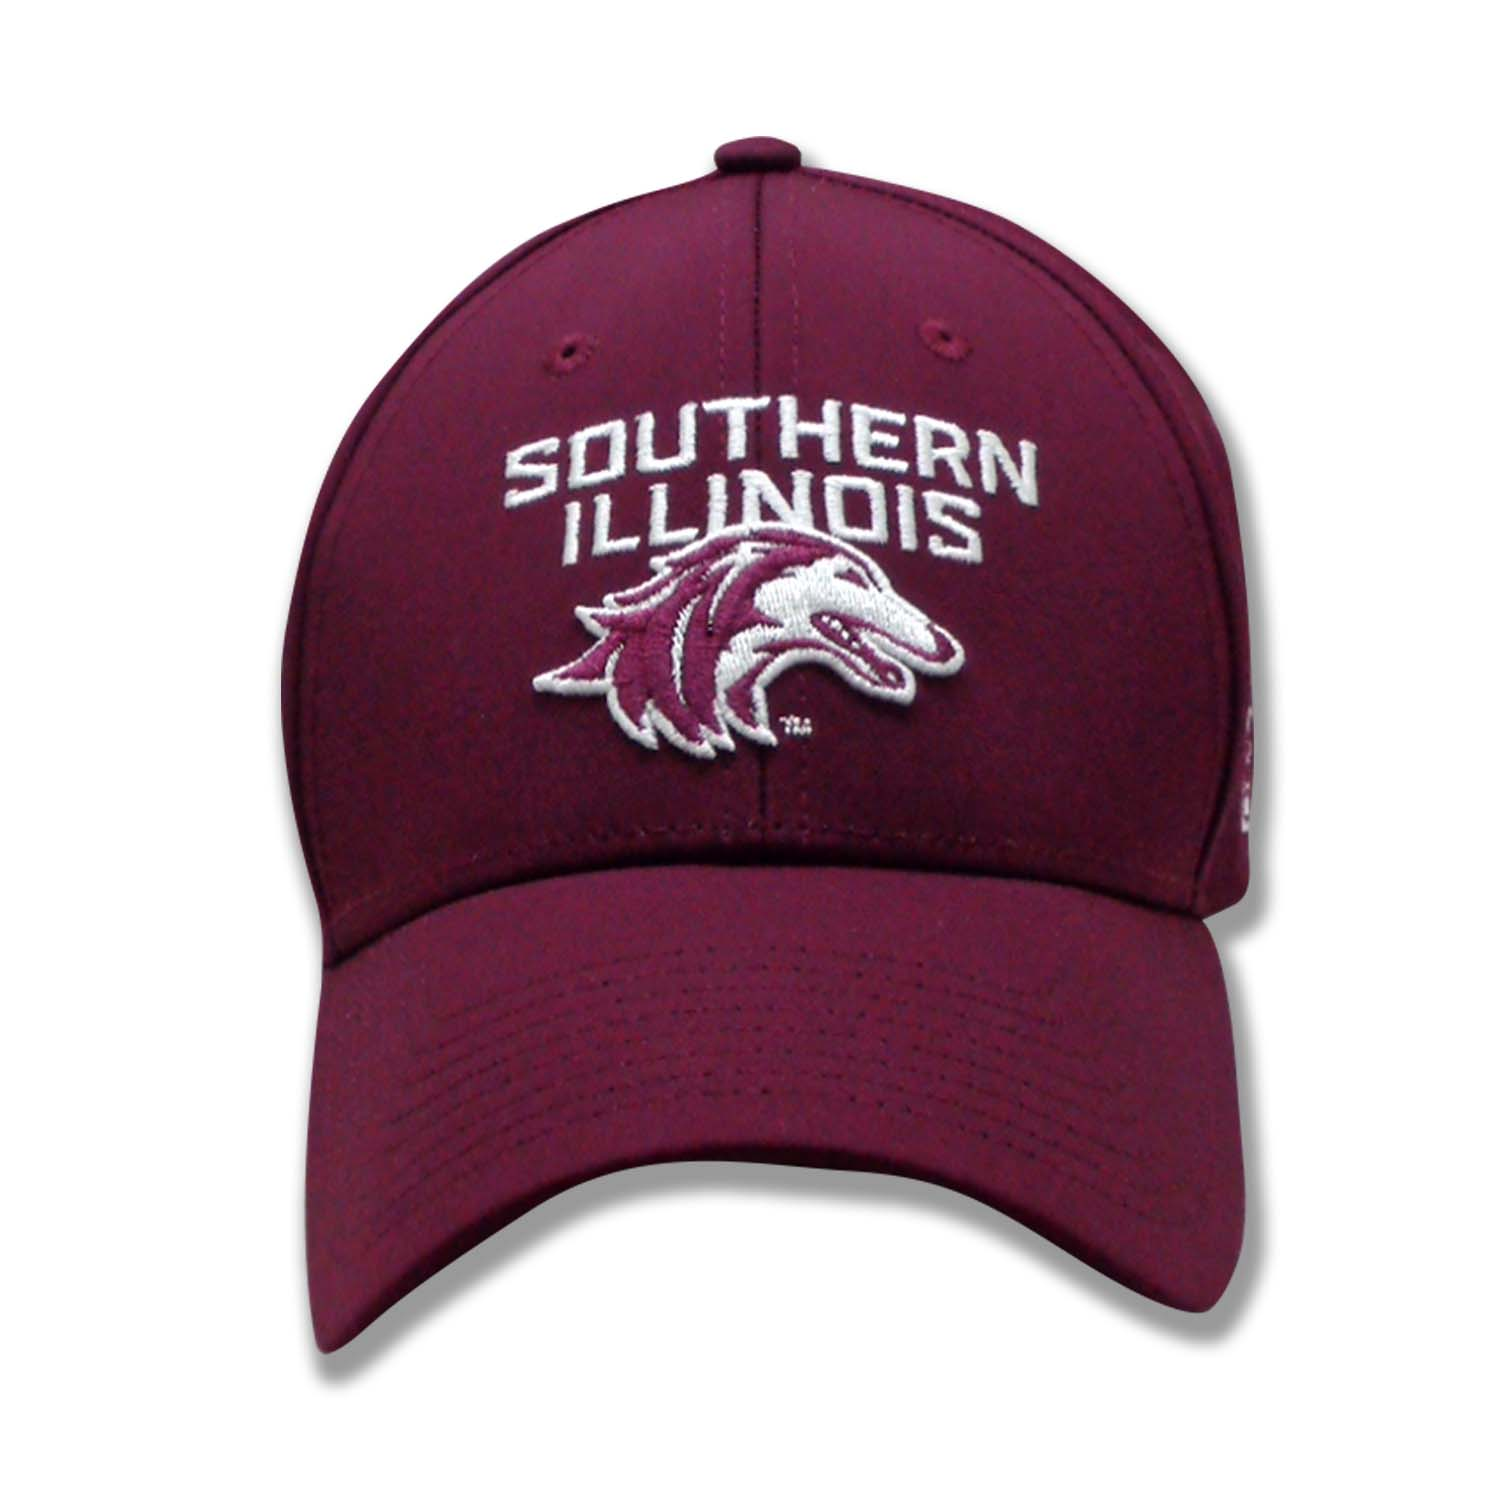 Image for the NEW 2019 ATHLETIC LOGO SOUTHERN ILLINOIS SALUKIS GAMECHANGER HAT product